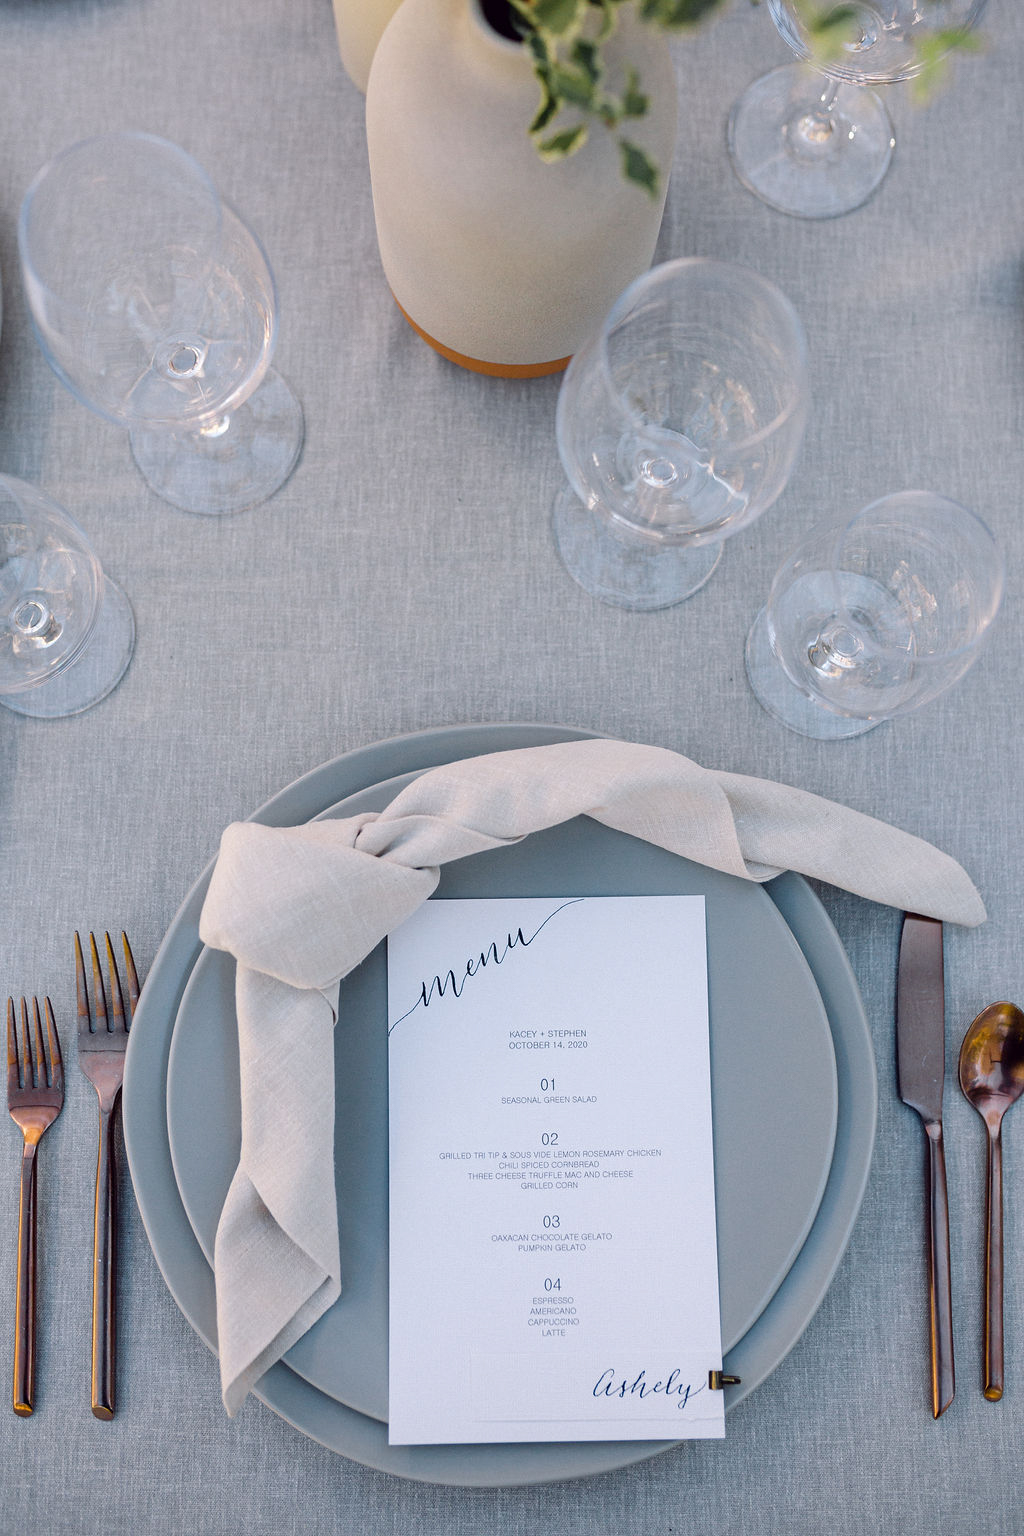 muted tones wedding reception place settings with menu